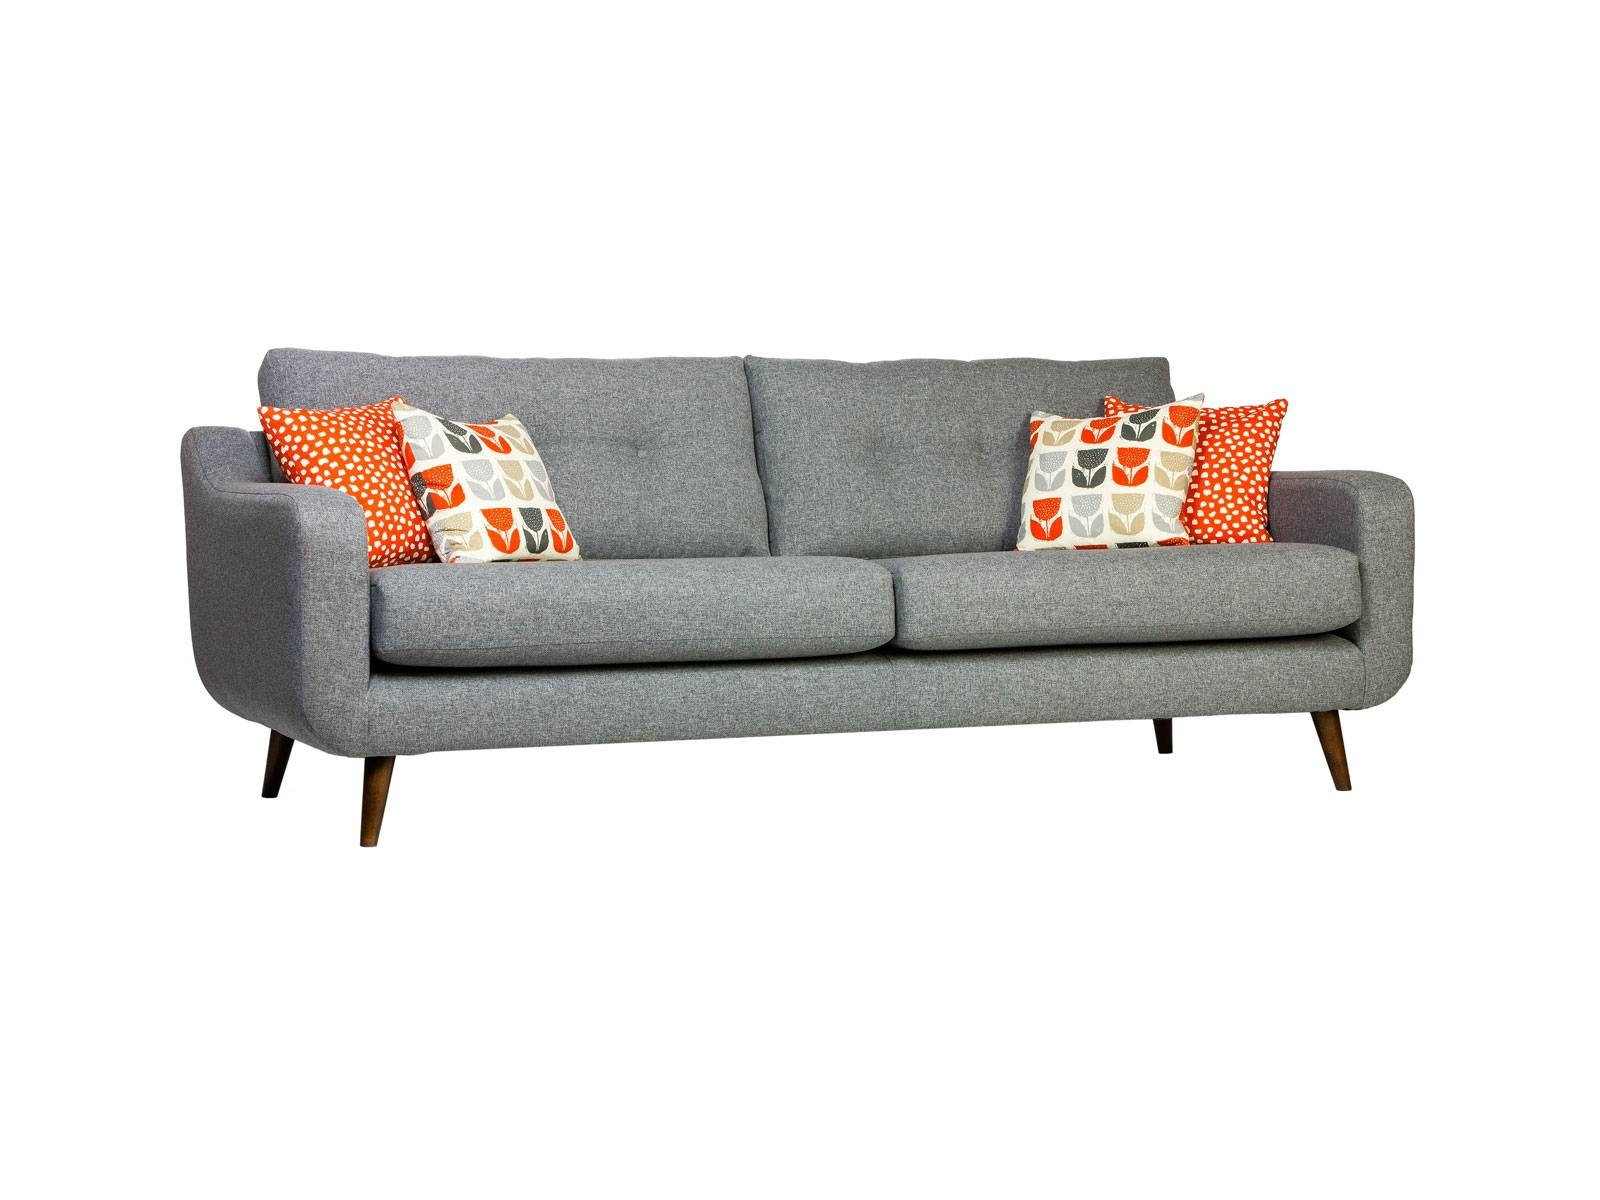 Biba 4 Seater Sofa Grade A | All Ranges | Cousins Furniture throughout 4 Seater Couch (Image 5 of 30)